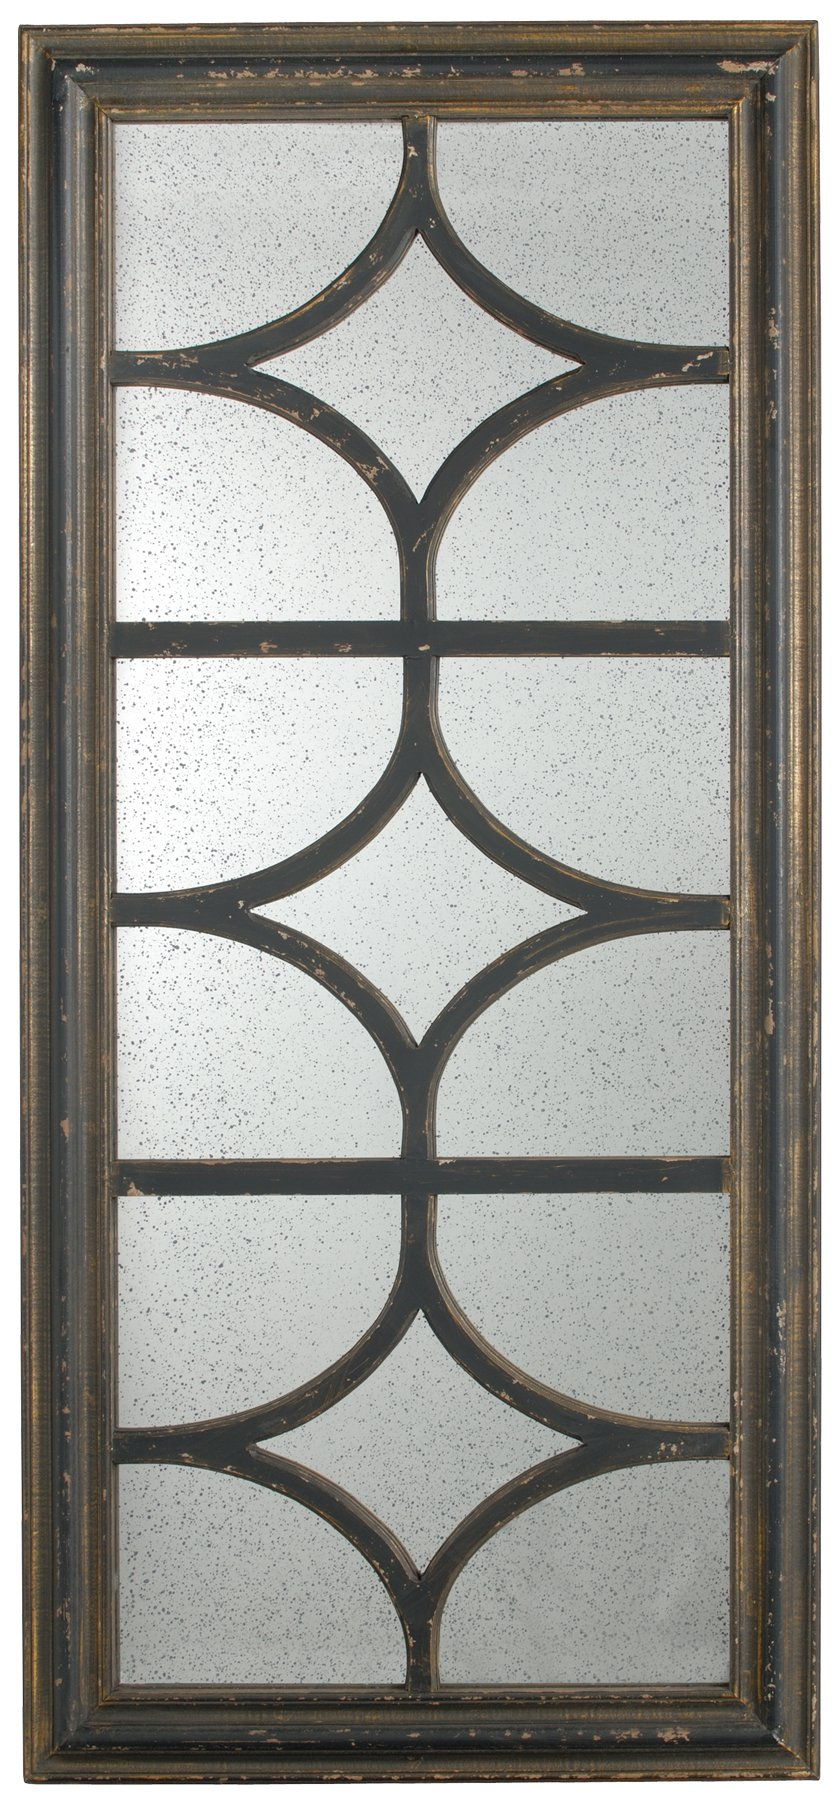 A&B Home Aulton Place Mirror, 27.5 by 59-Inch, Black